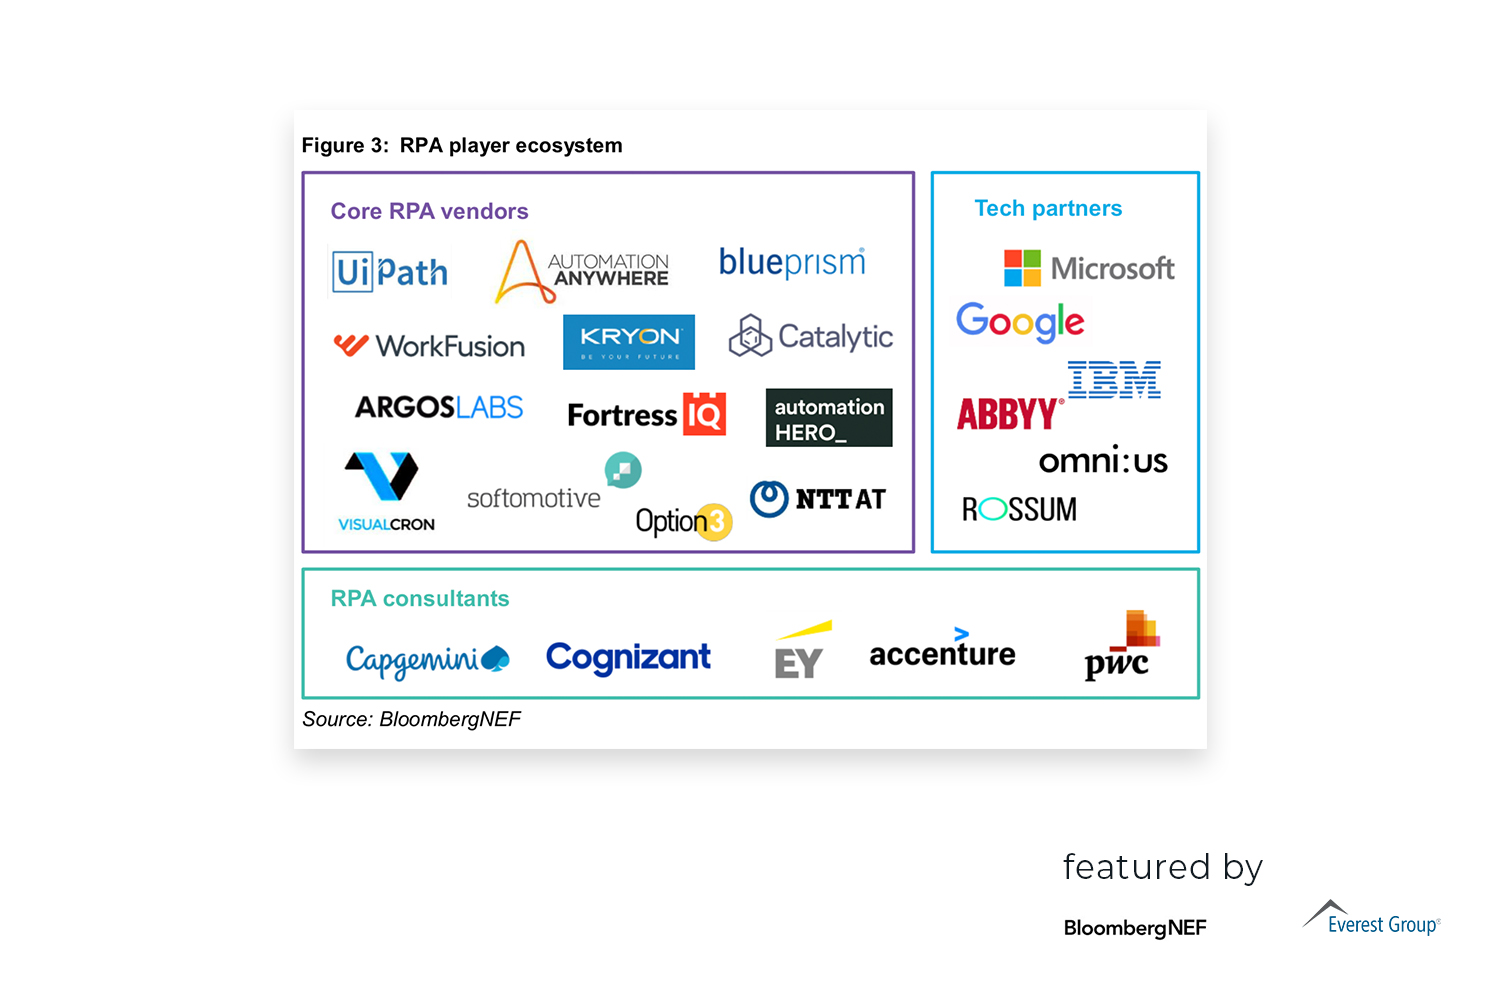 Bloomberg and Everest Group RPA player ecosystem